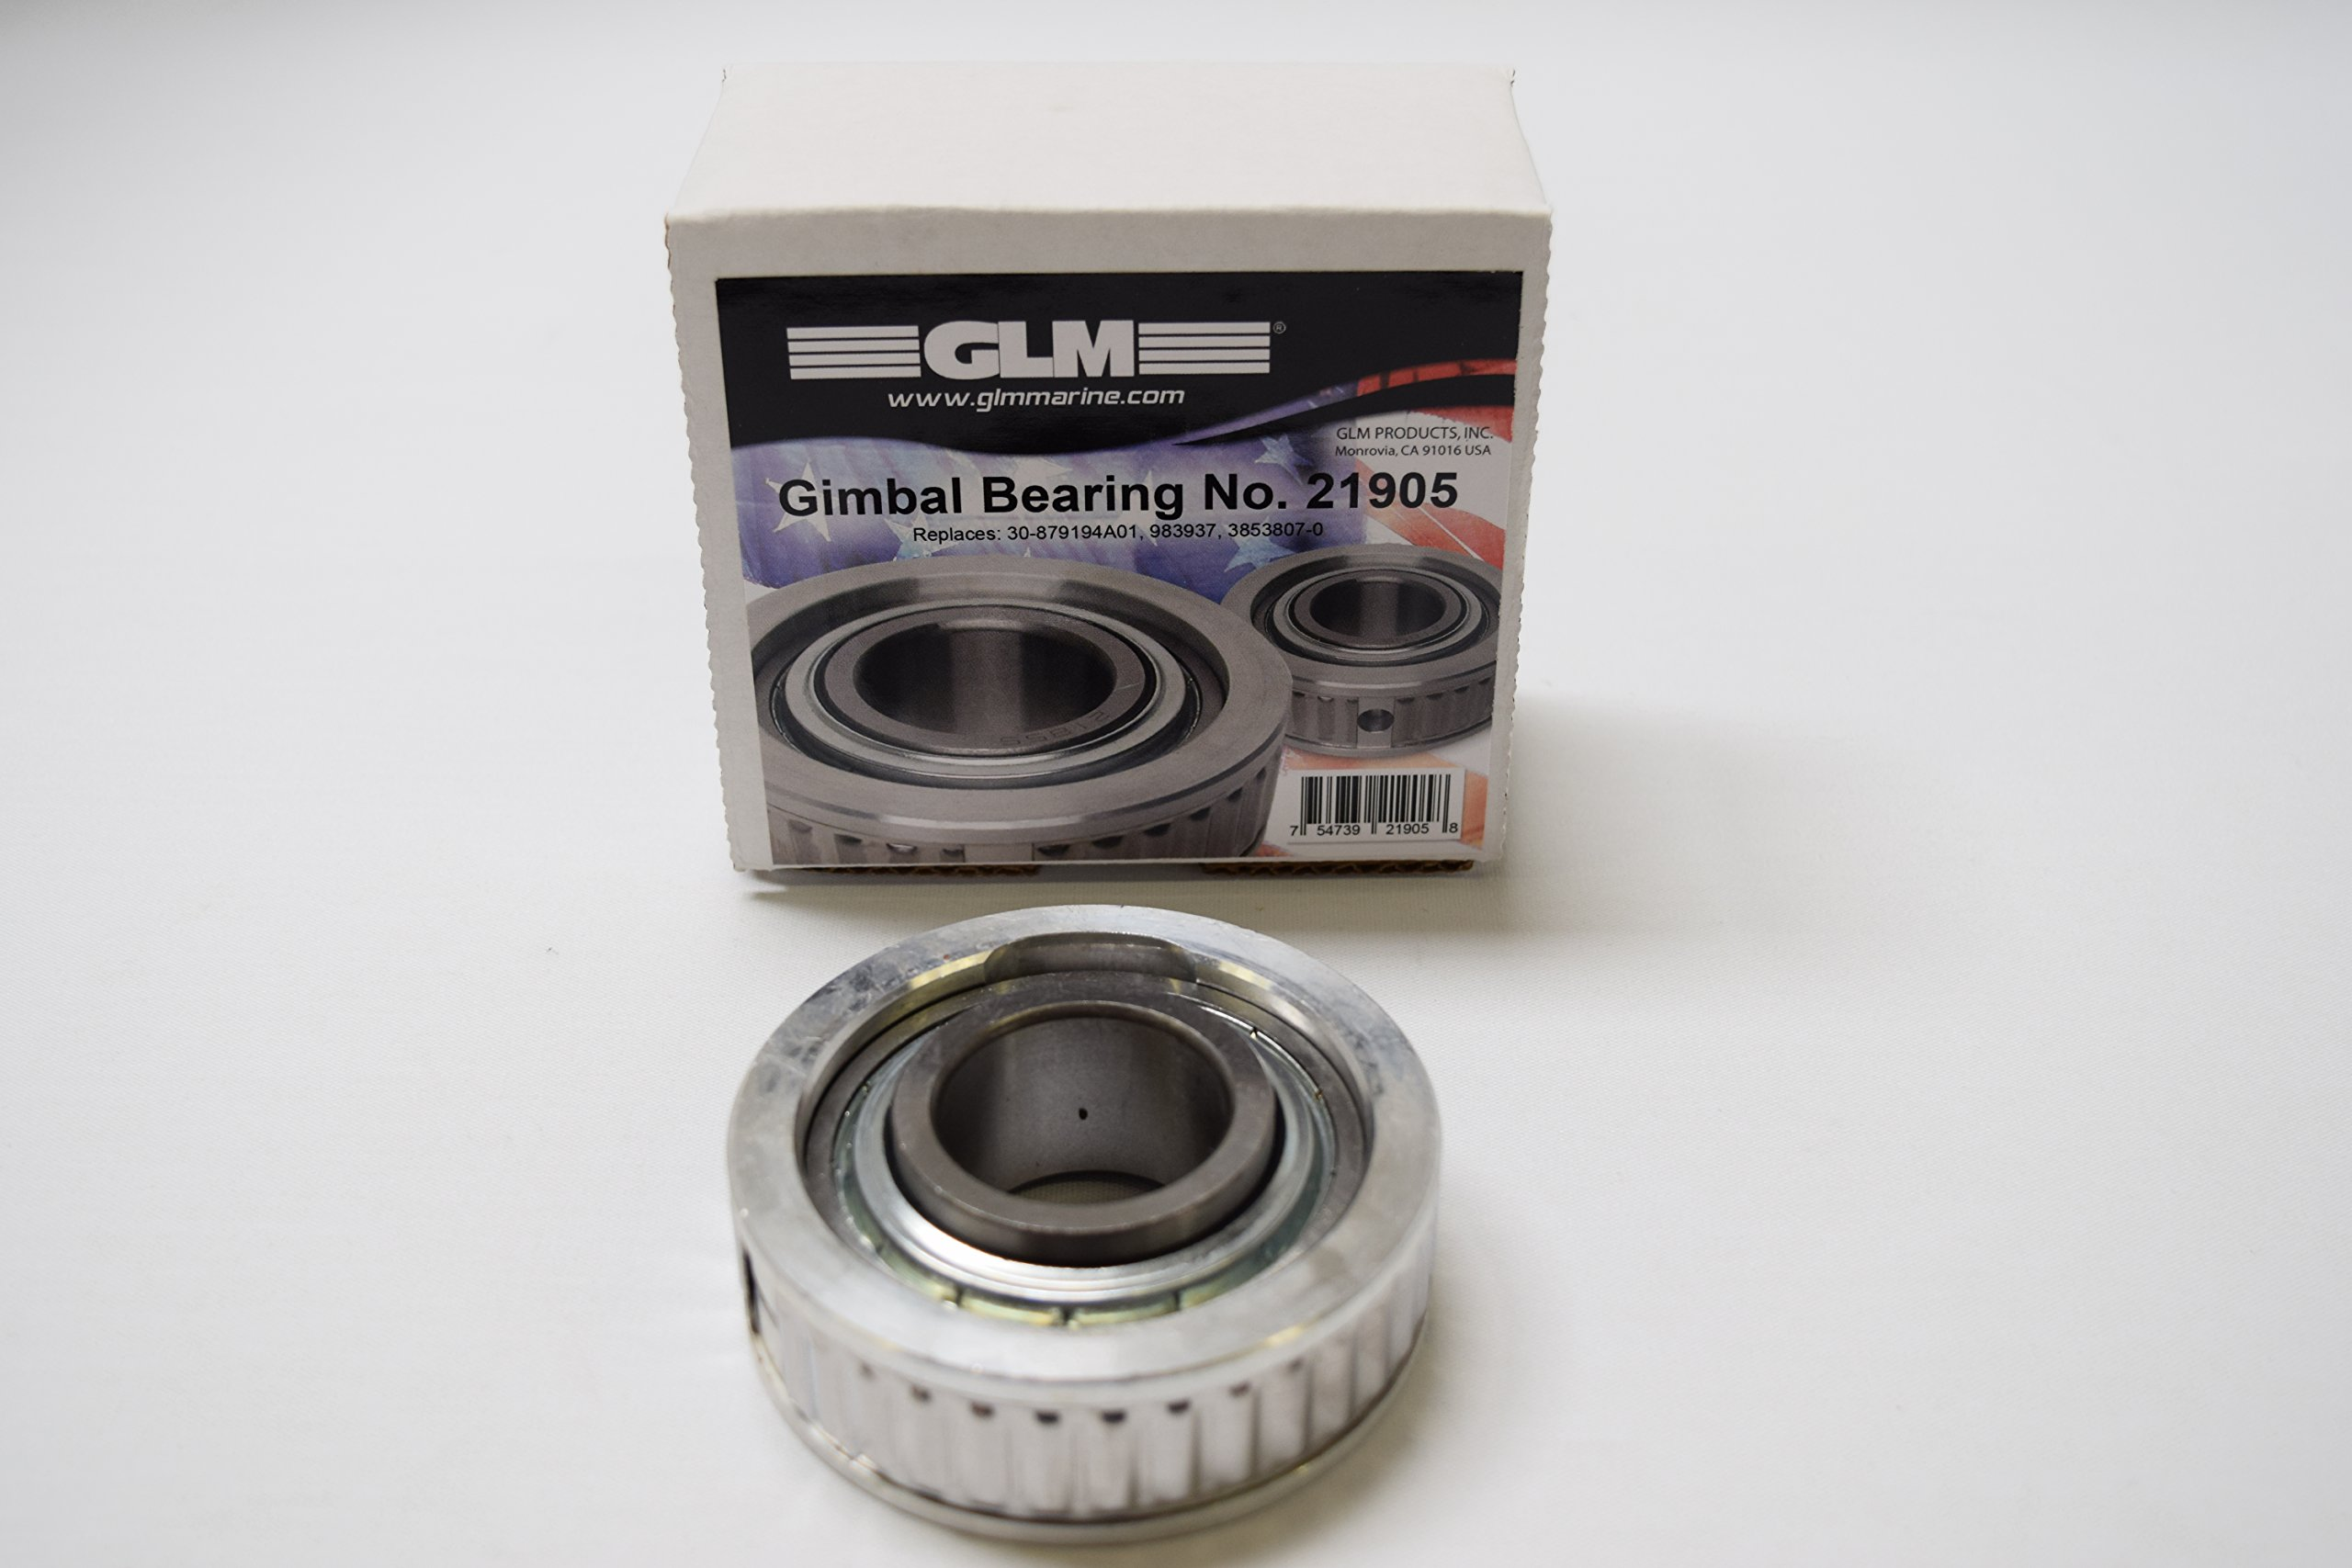 Marine Gimbal Bearing Replaces Mercruiser 30-60794A4 GLM 21905 ALPHA ONE